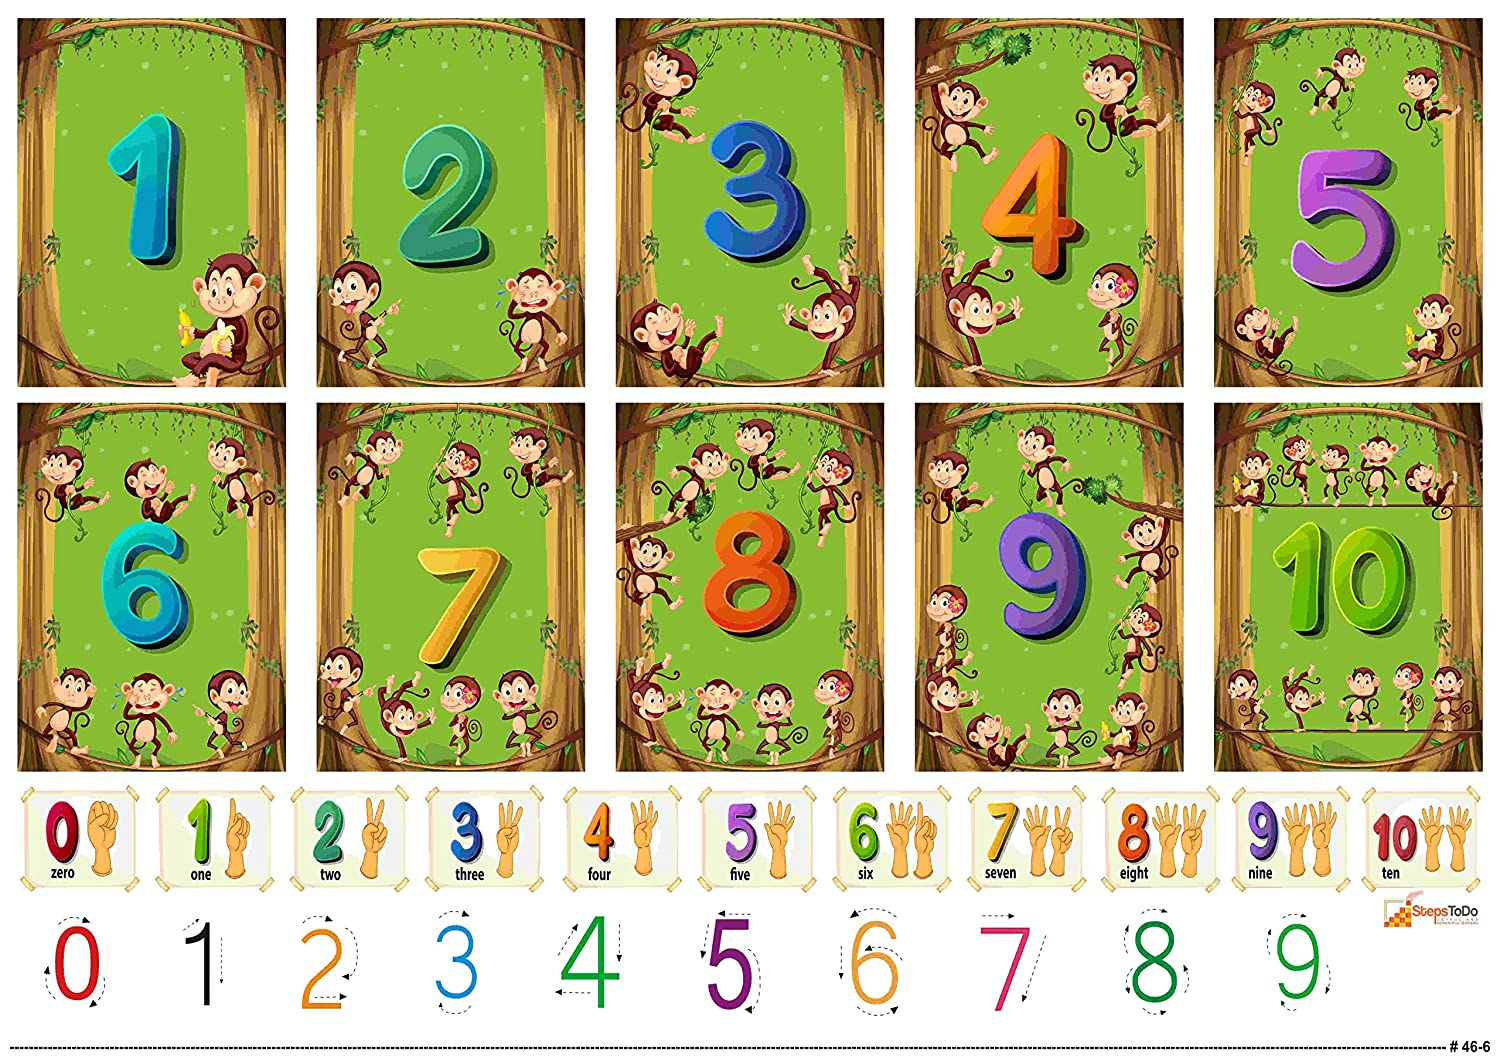 Buy Laminated Charts of Alphabets, Numbers, Shapes, Animals, Birds ...